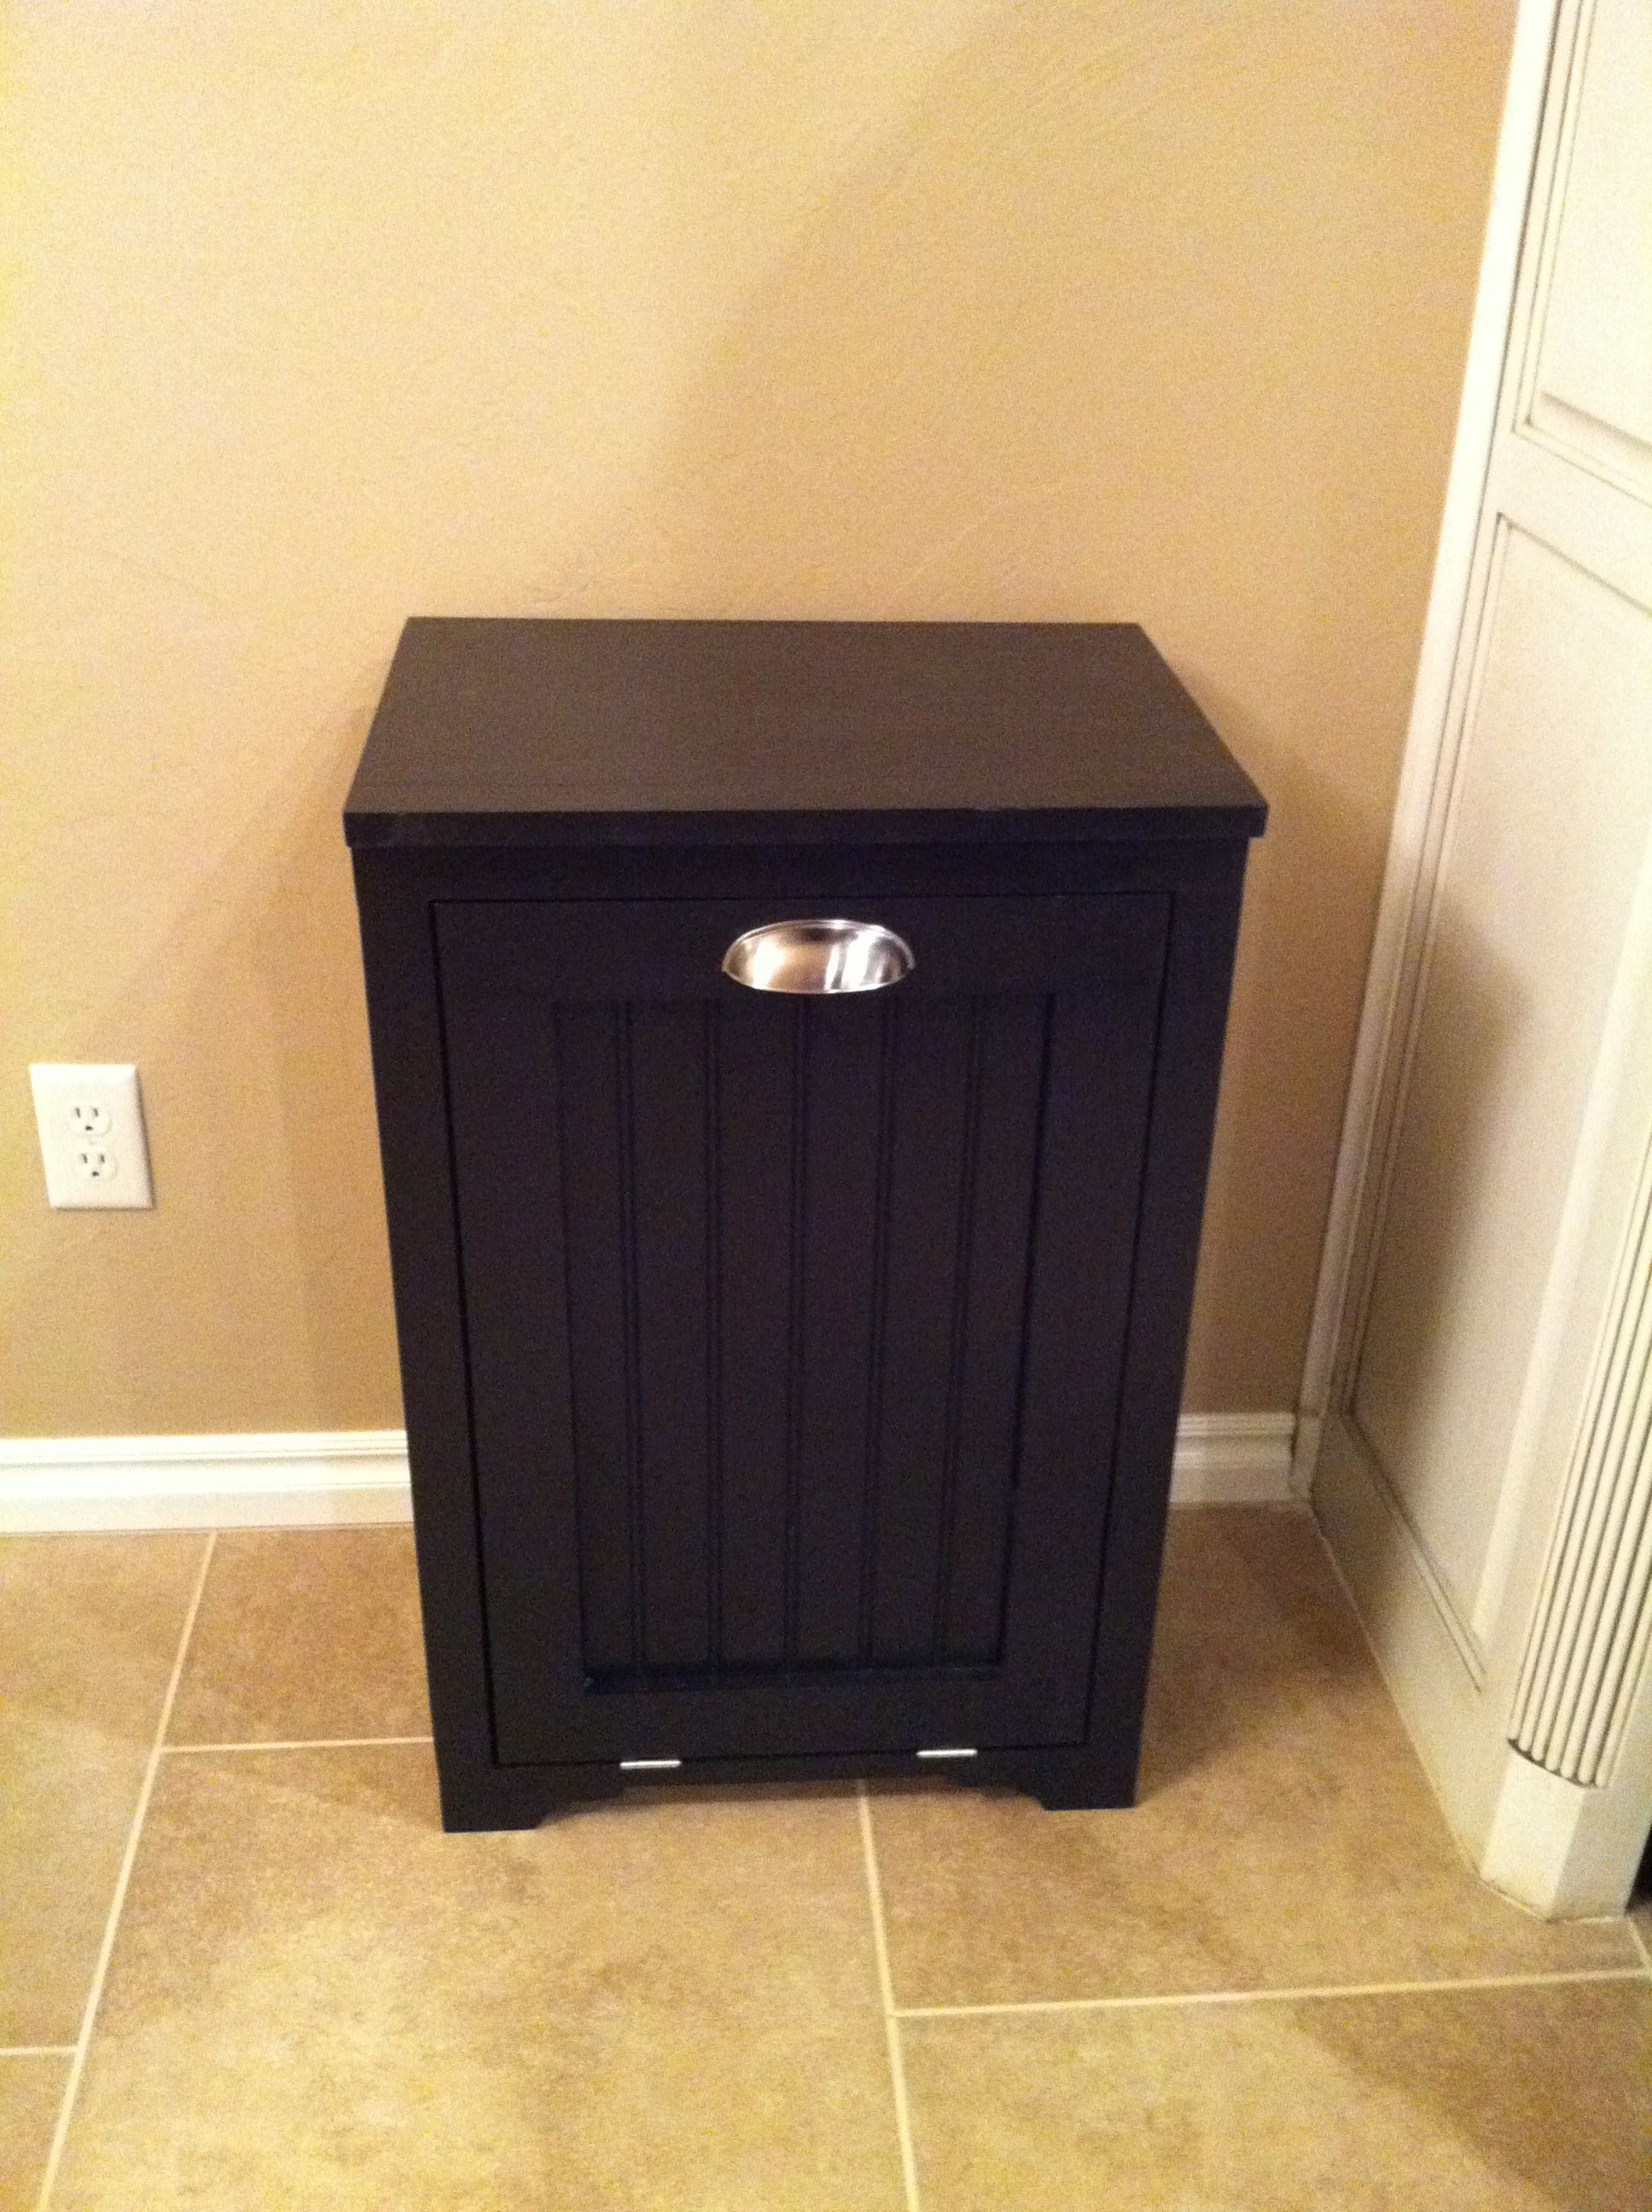 hide away trash bin kitchen draining board can a way ideas diy and craft pinterest